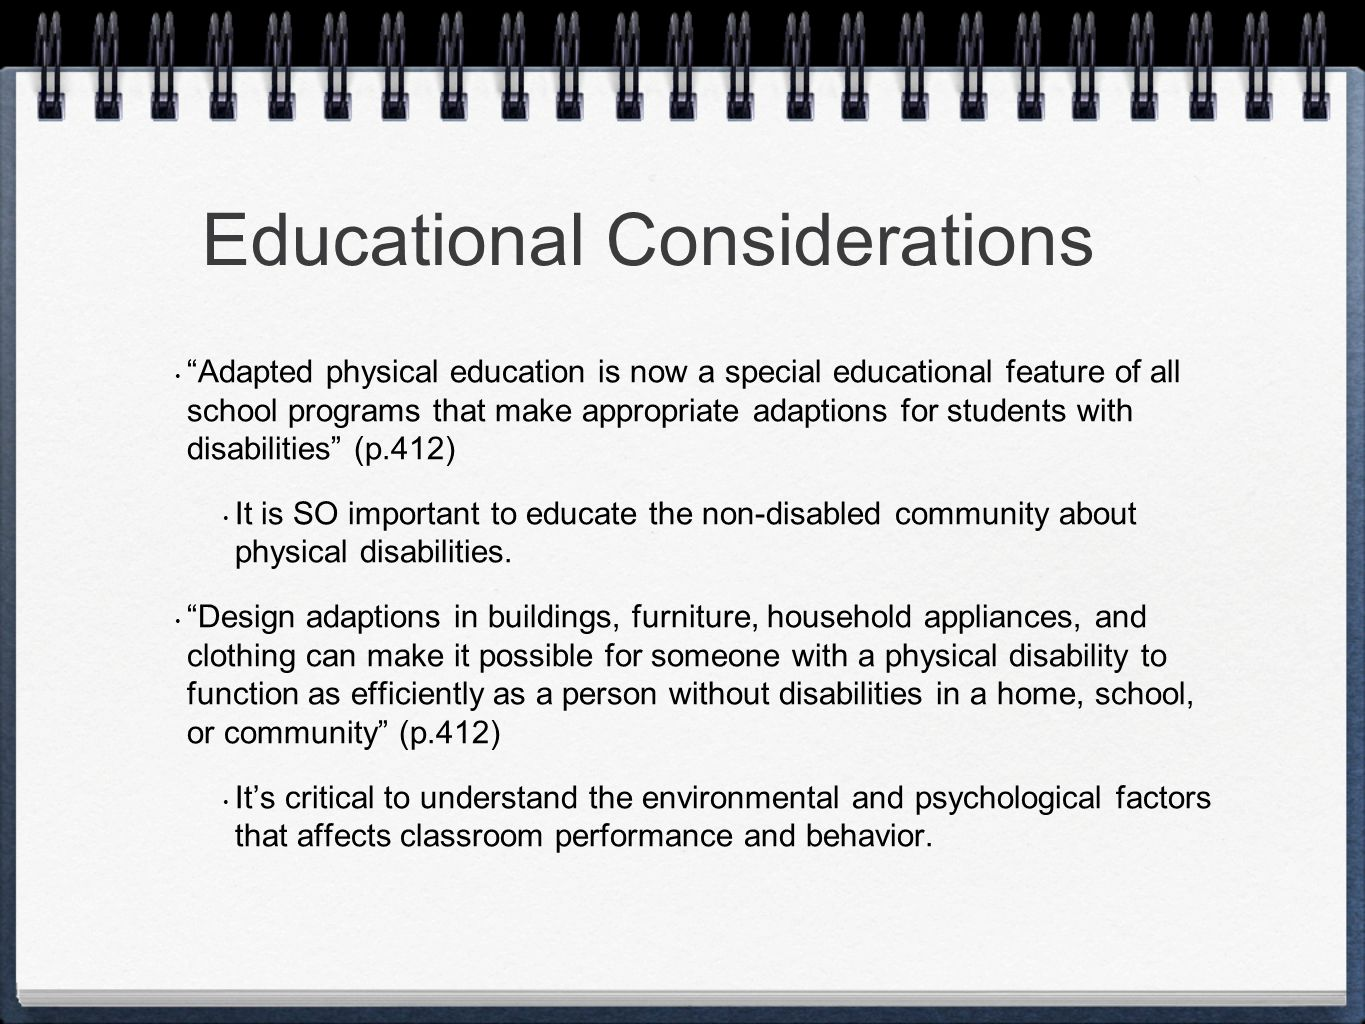 Classroom Design And How It Influences Behavior ~ Children with physical disabilities and other health